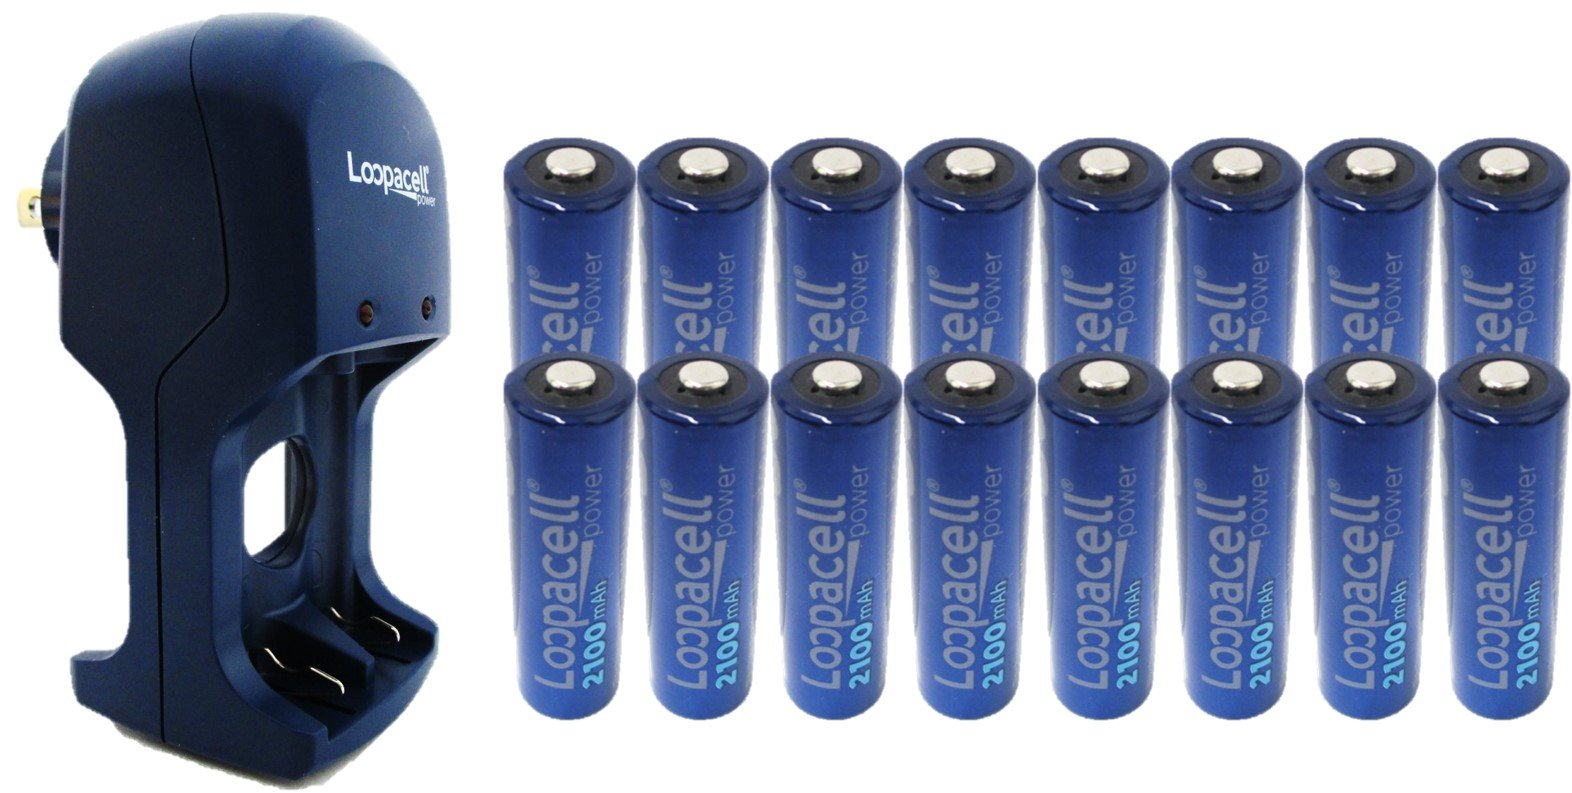 16 Loopacell AA 2100mAh Rechargeable Precharged Ni-MH 1.2V Batteries with AA & AAA Battery Charger